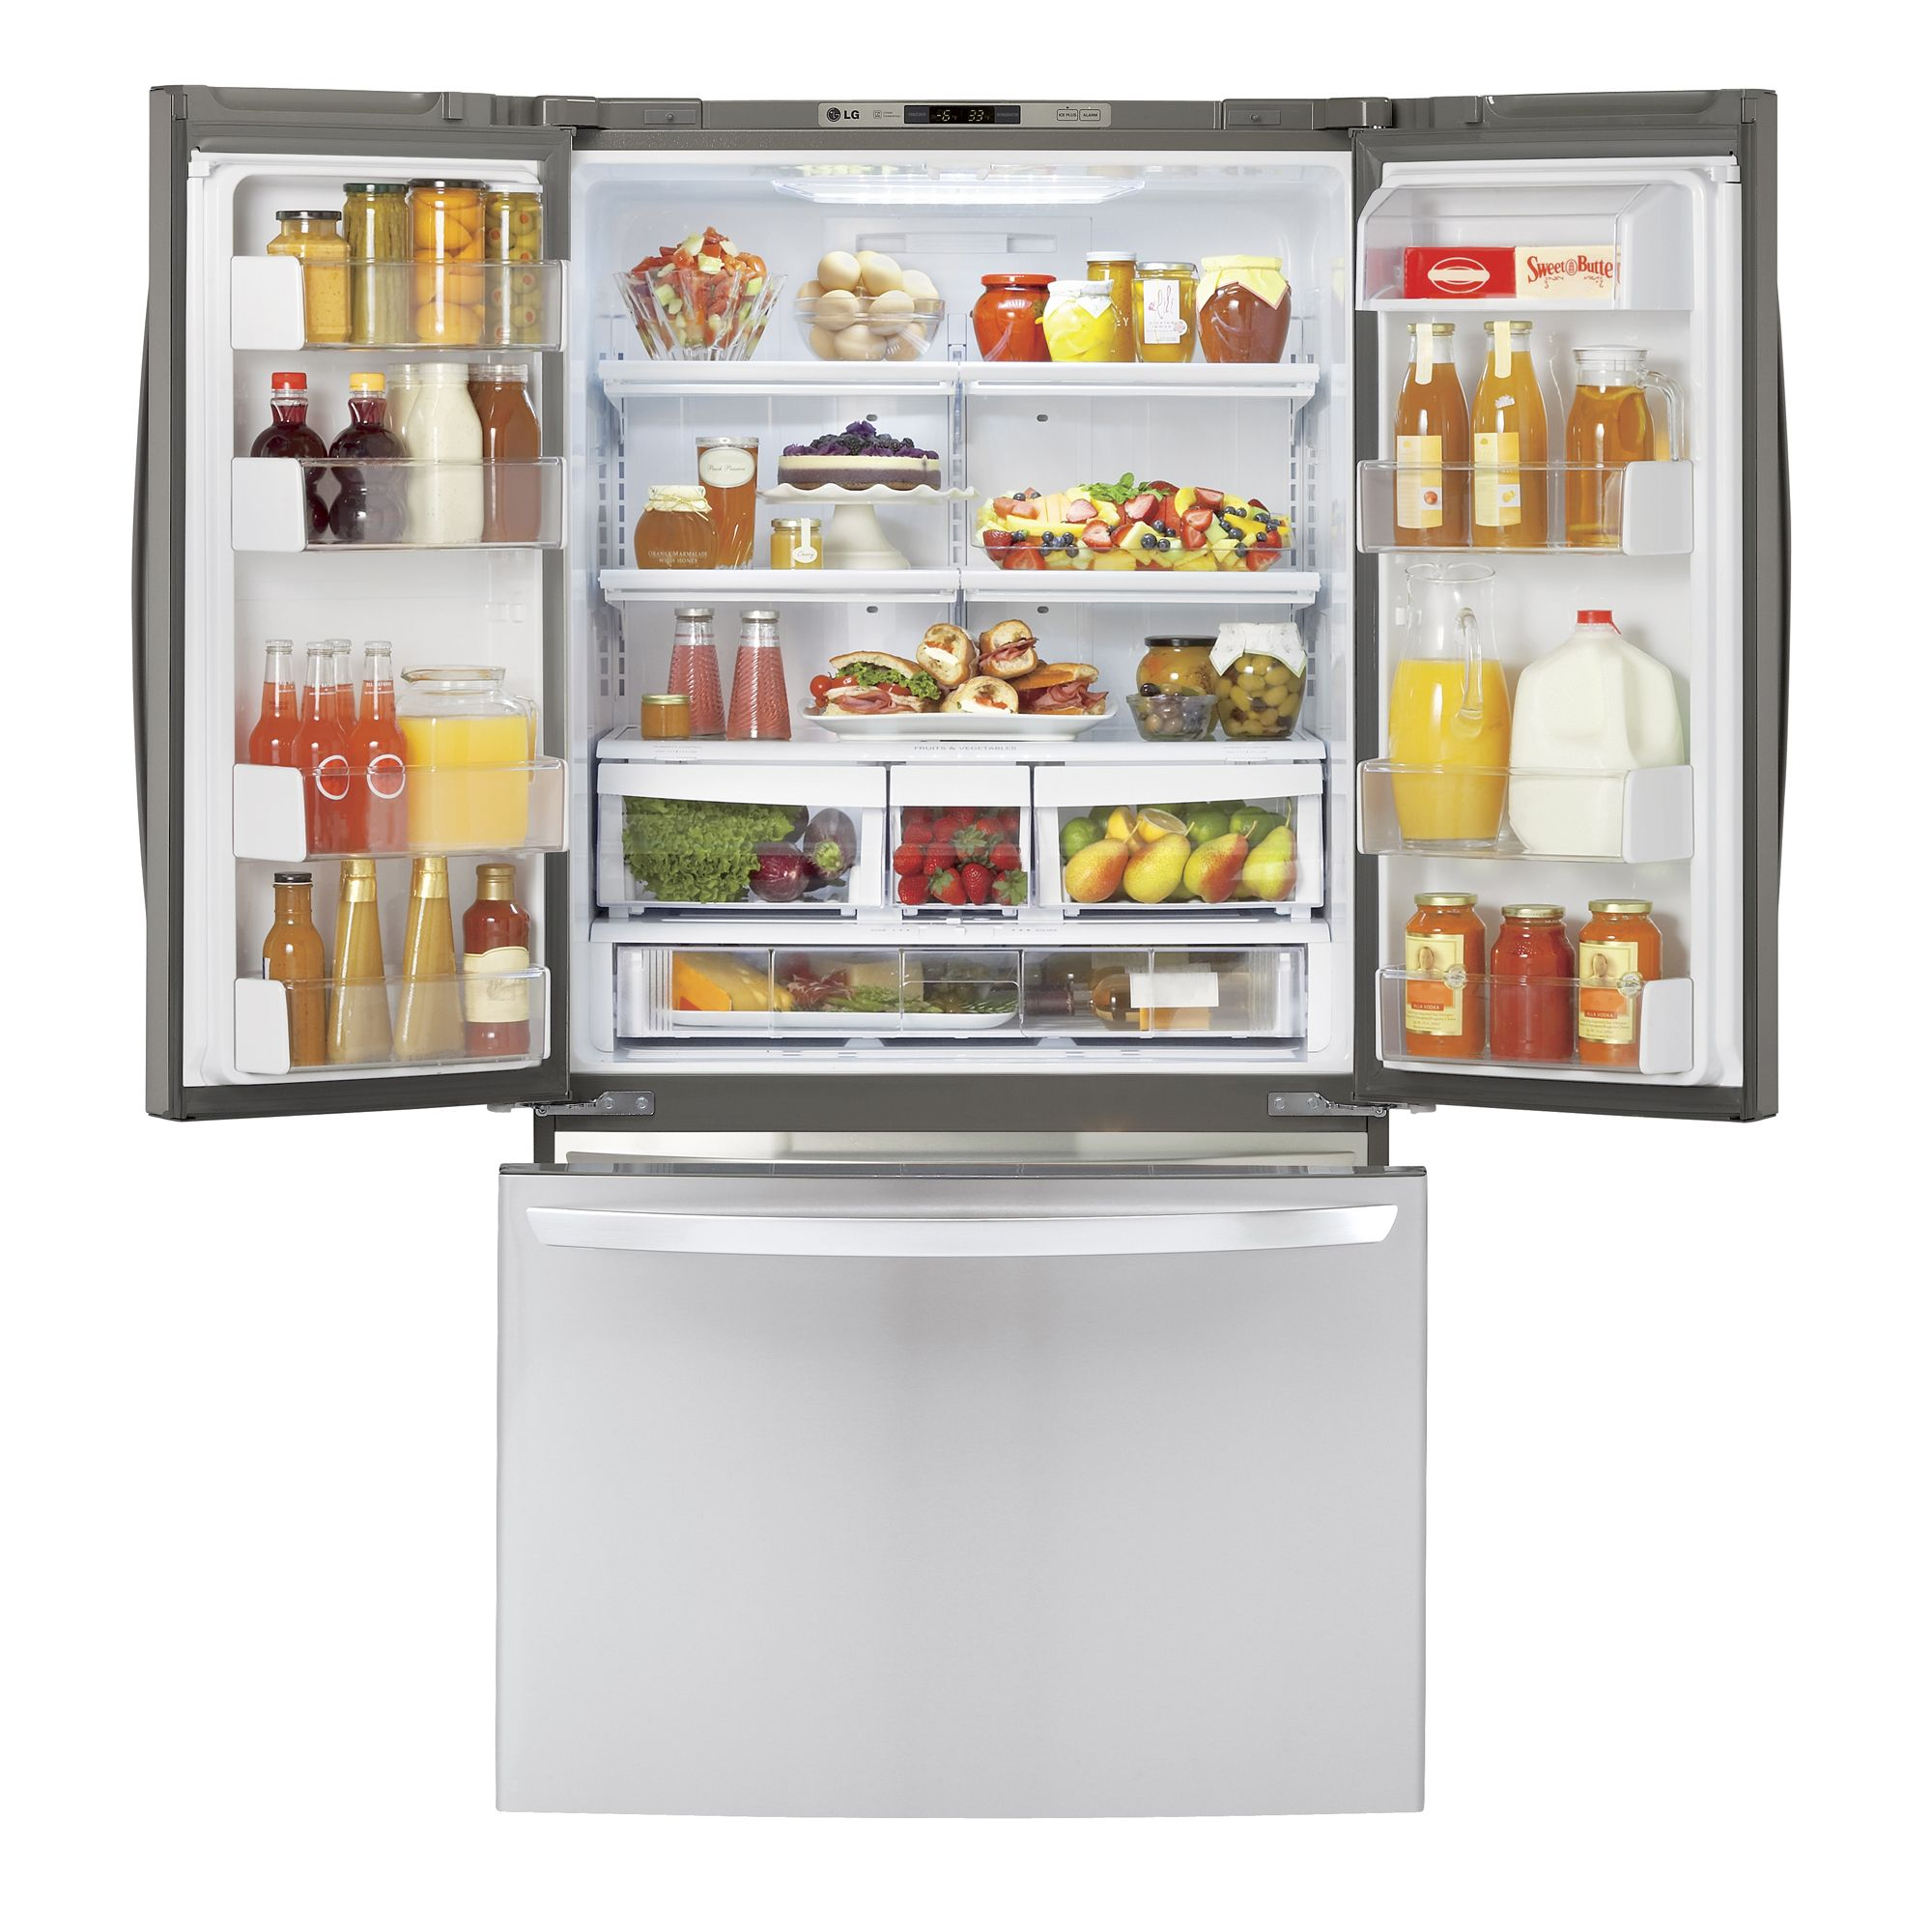 LG LFC21776ST 20.7 cu. ft. Counter-Depth French Door Bottom-Freezer Refrigerator